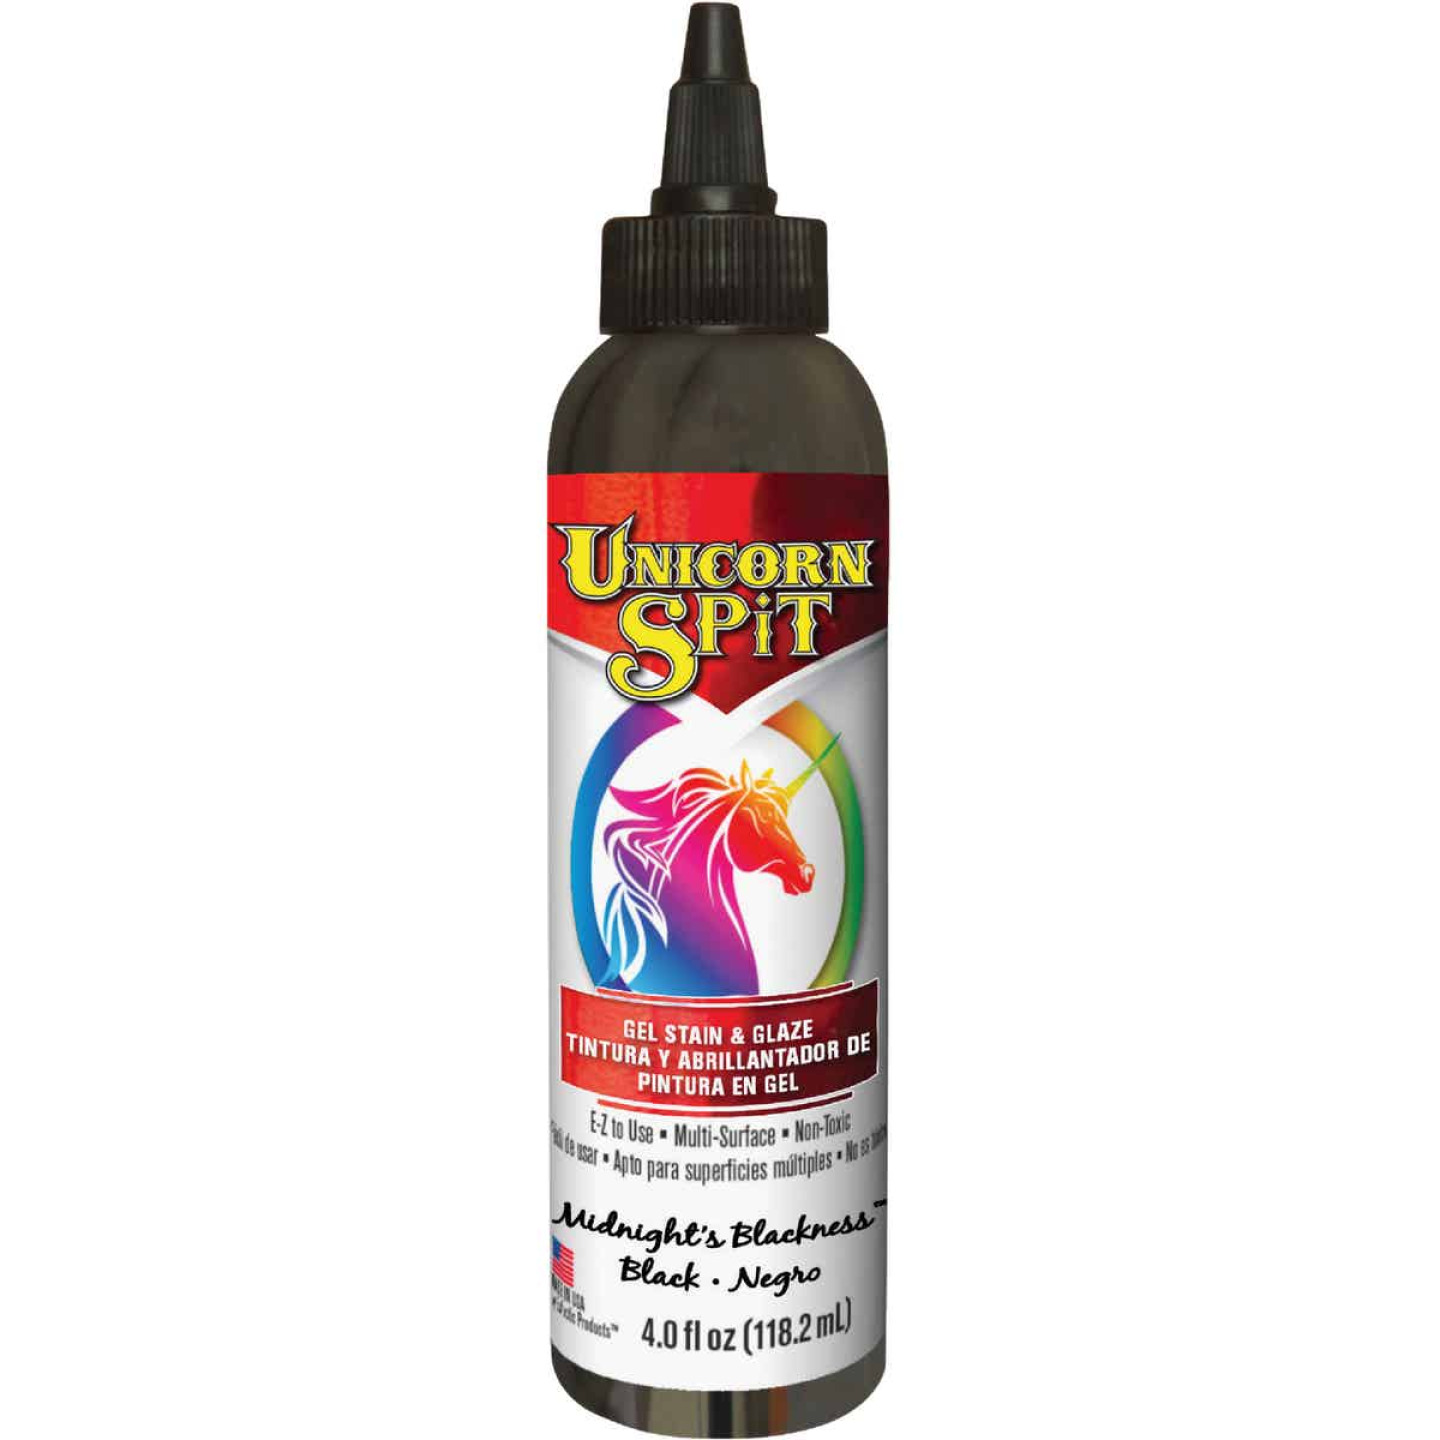 Unicorn Spit 4 Oz. Midnights Blackness Paint, Gel Stain & Glaze Image 1